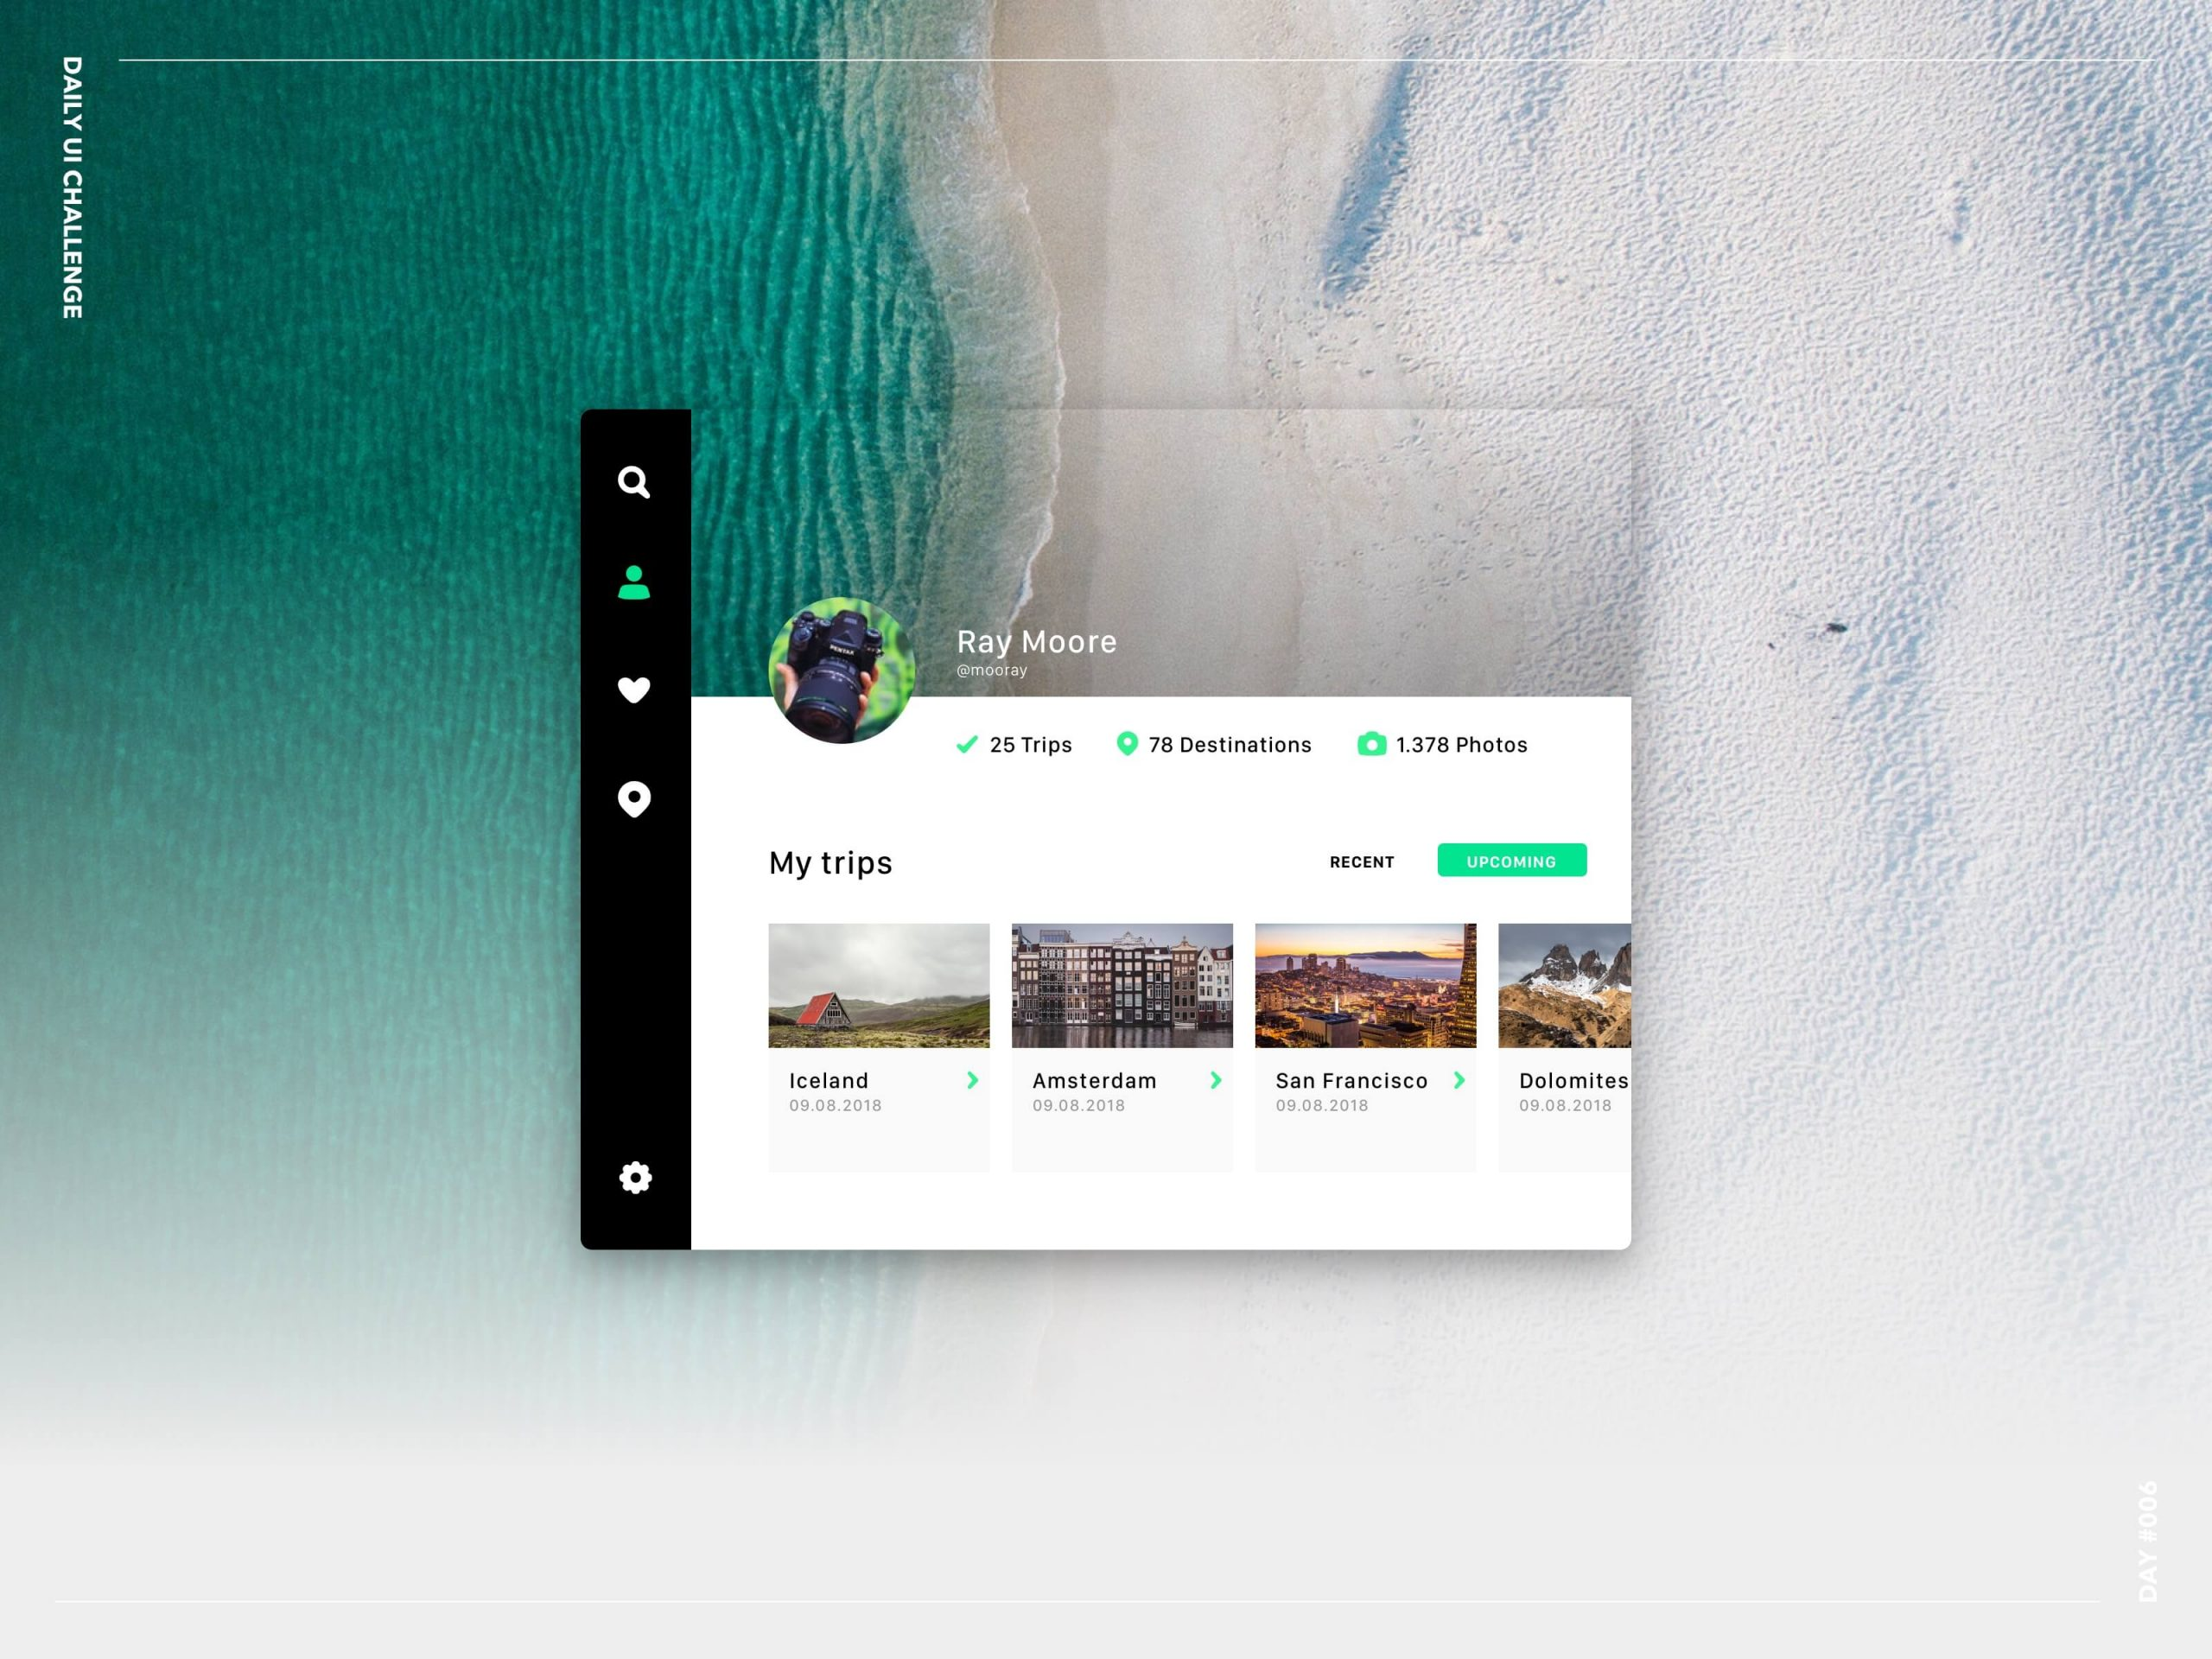 006-DUIC-User-Profile-Dribbble-1